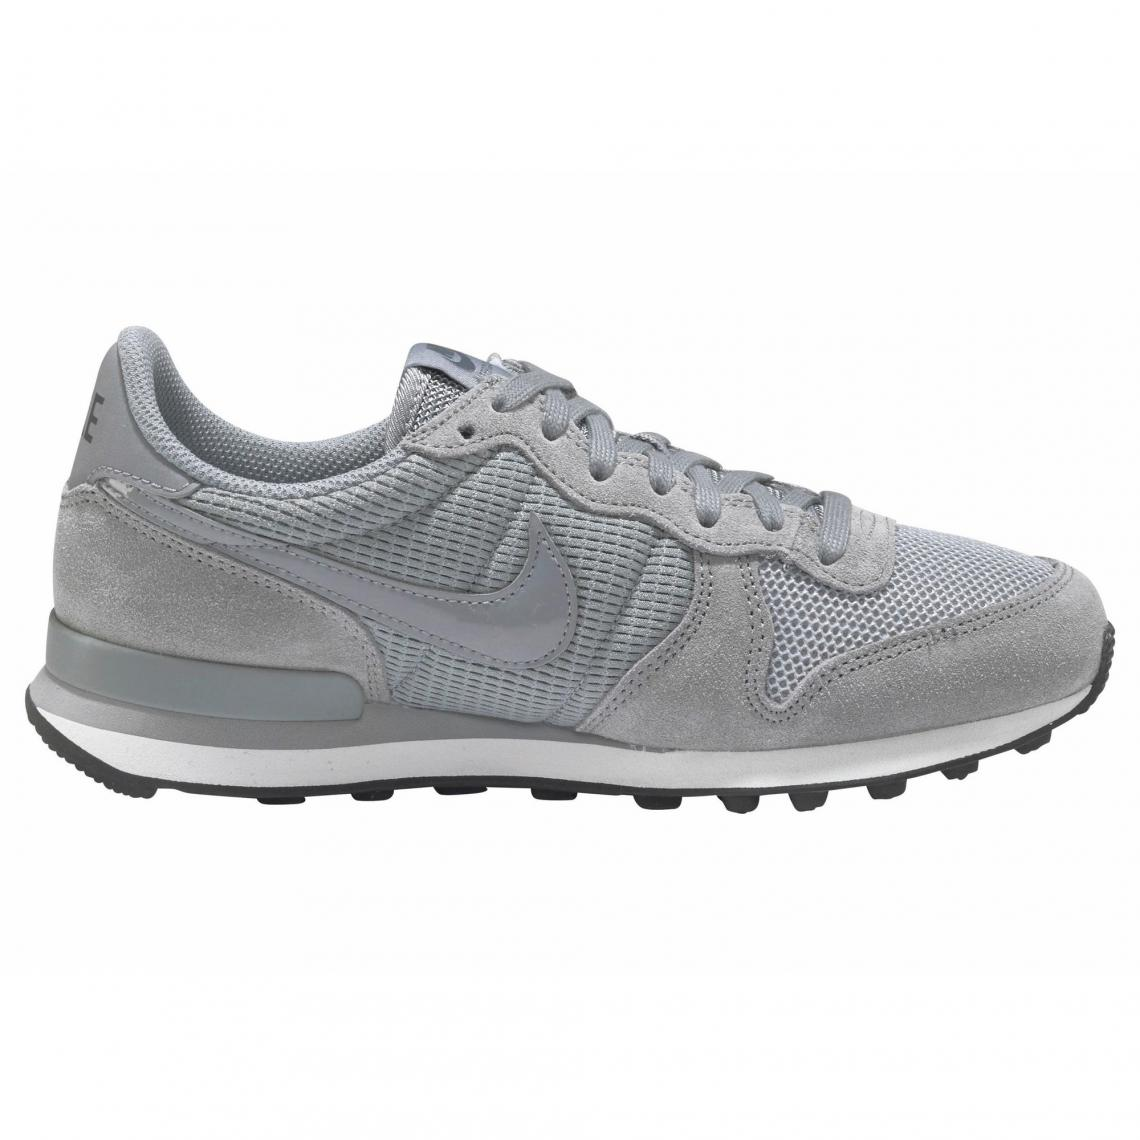 new product 9eec9 7bd5c Nike Internationalist chaussures de sport femme - Gris Moyen   3 SUISSES